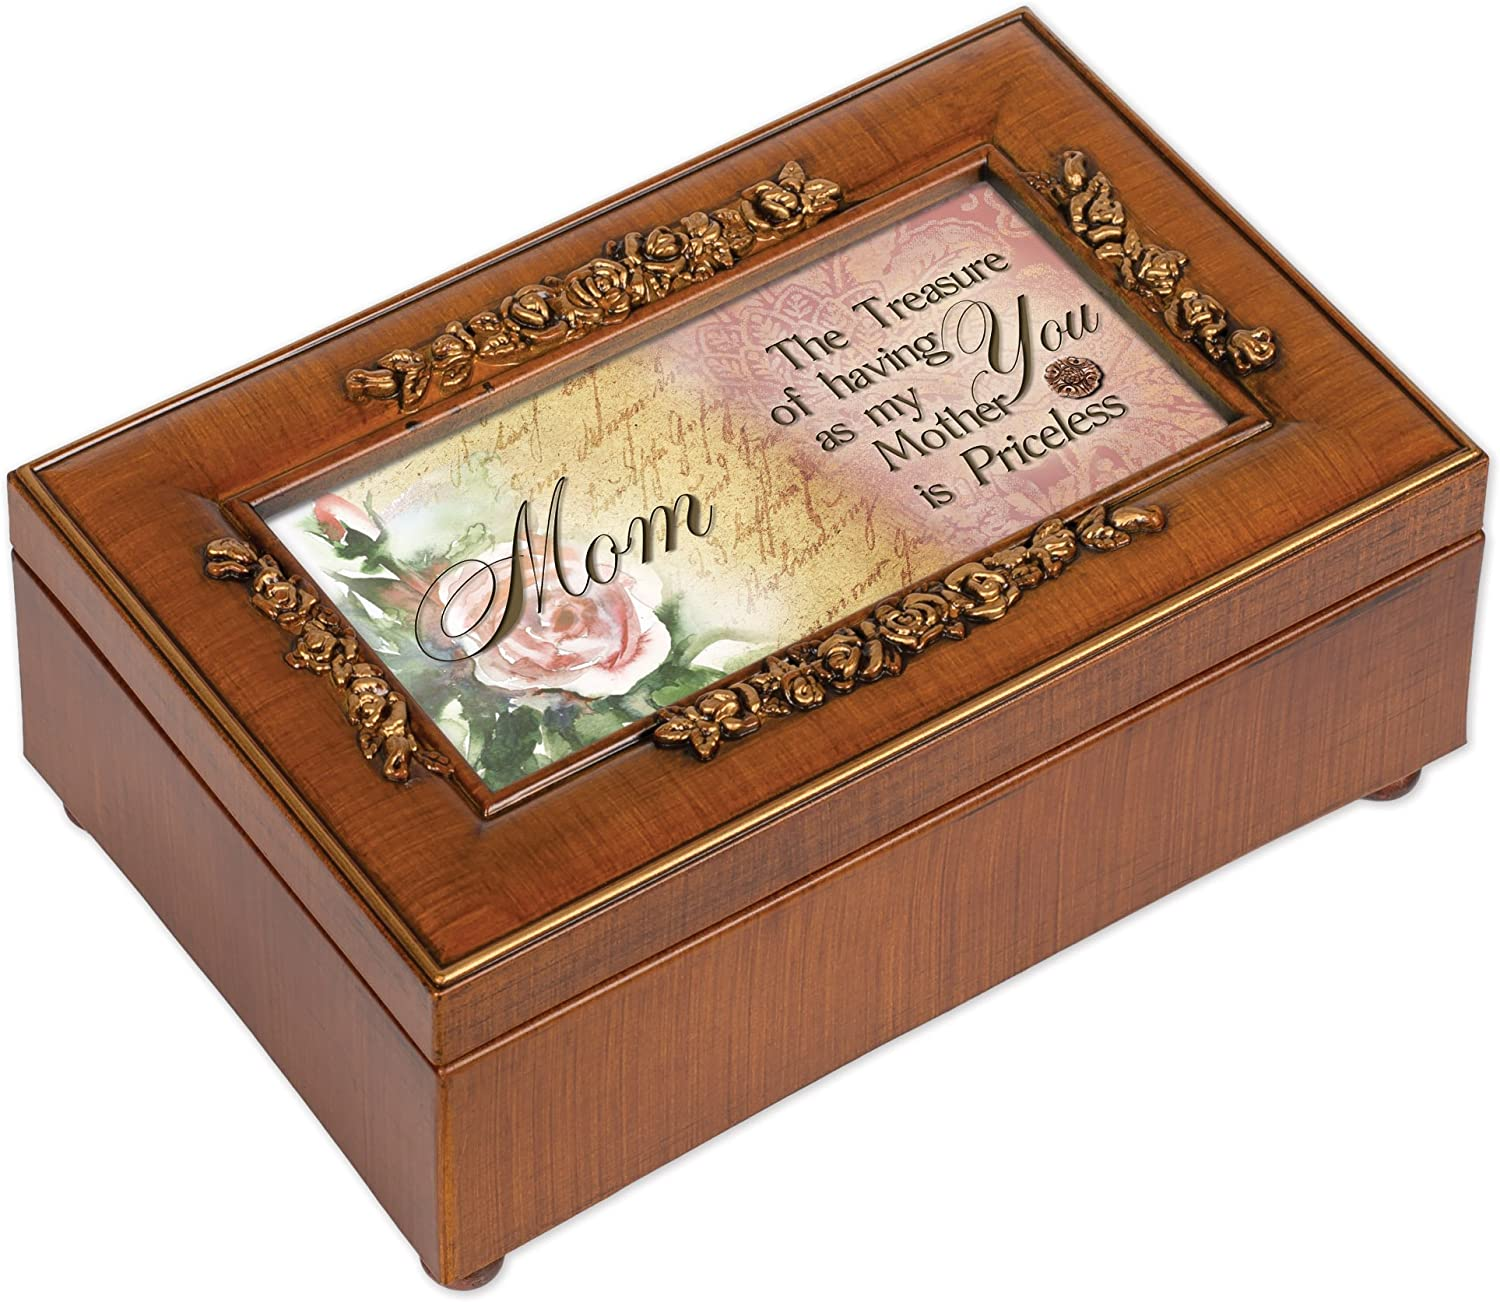 Cottage Garden Priceless Having You as Mother Woodgrain Embossed Jewelry Music Box Plays Wind Beneath My Wings